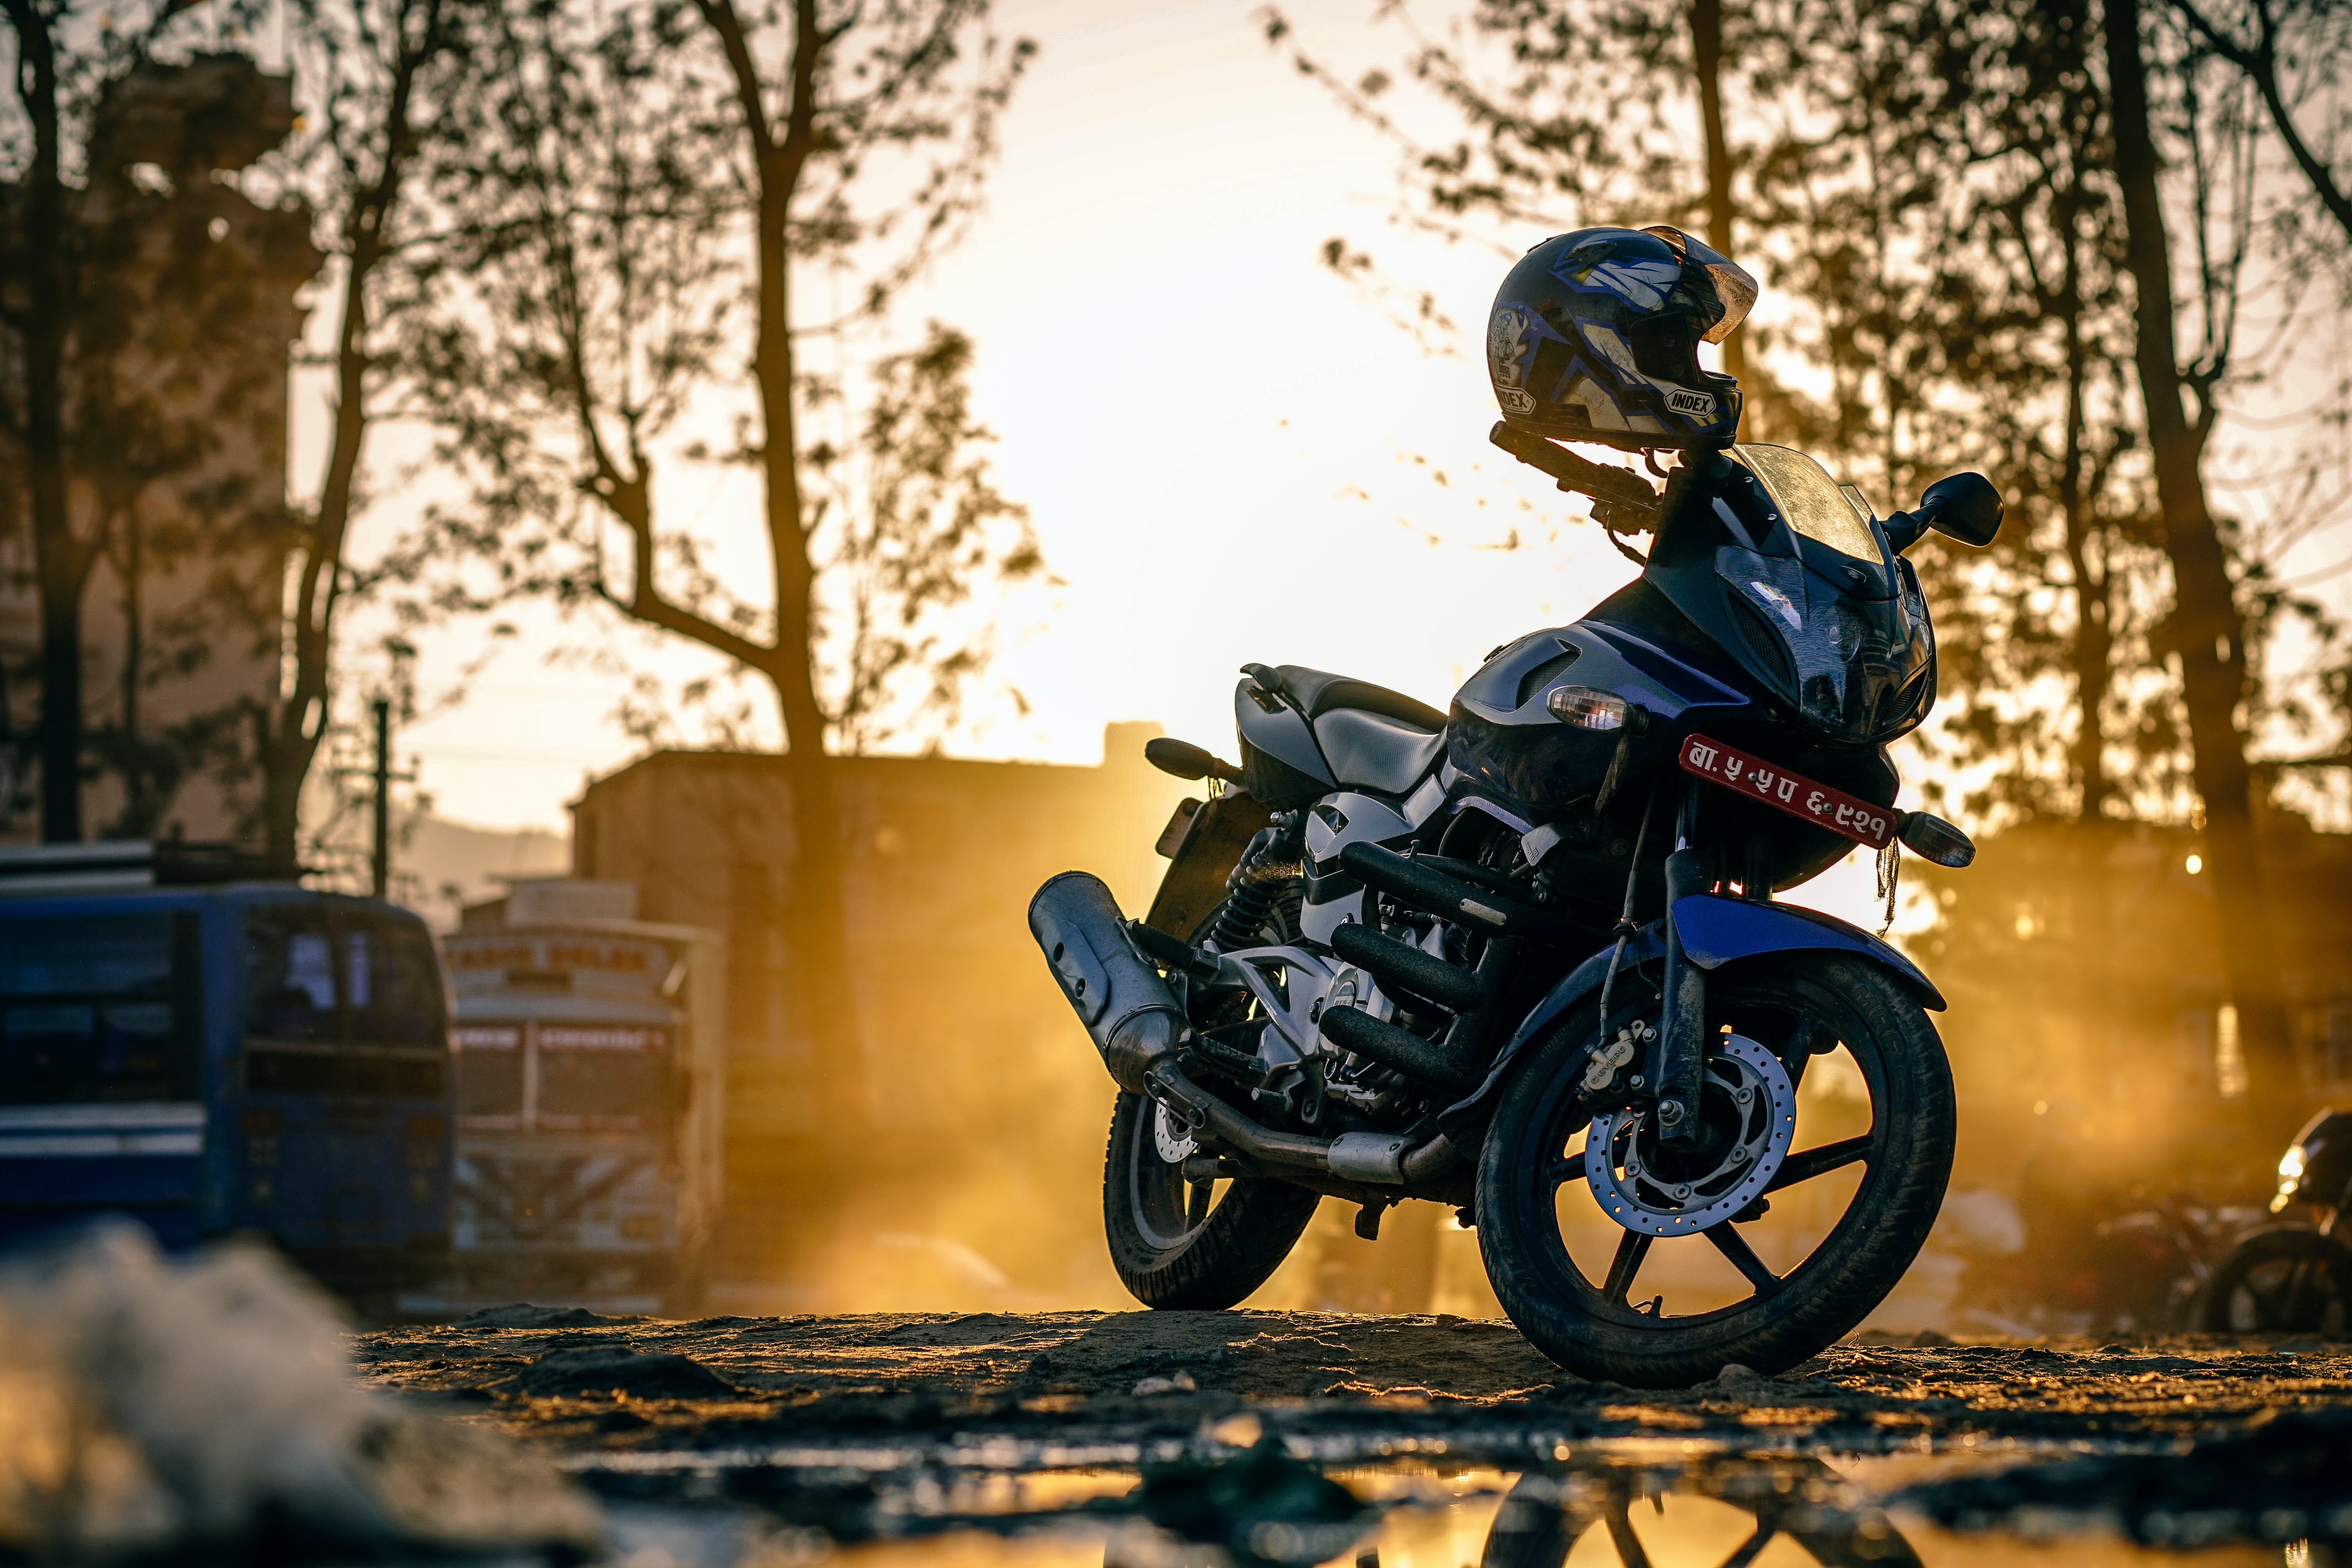 A motorcycle parked on a roadside in Kathmandu at sunset